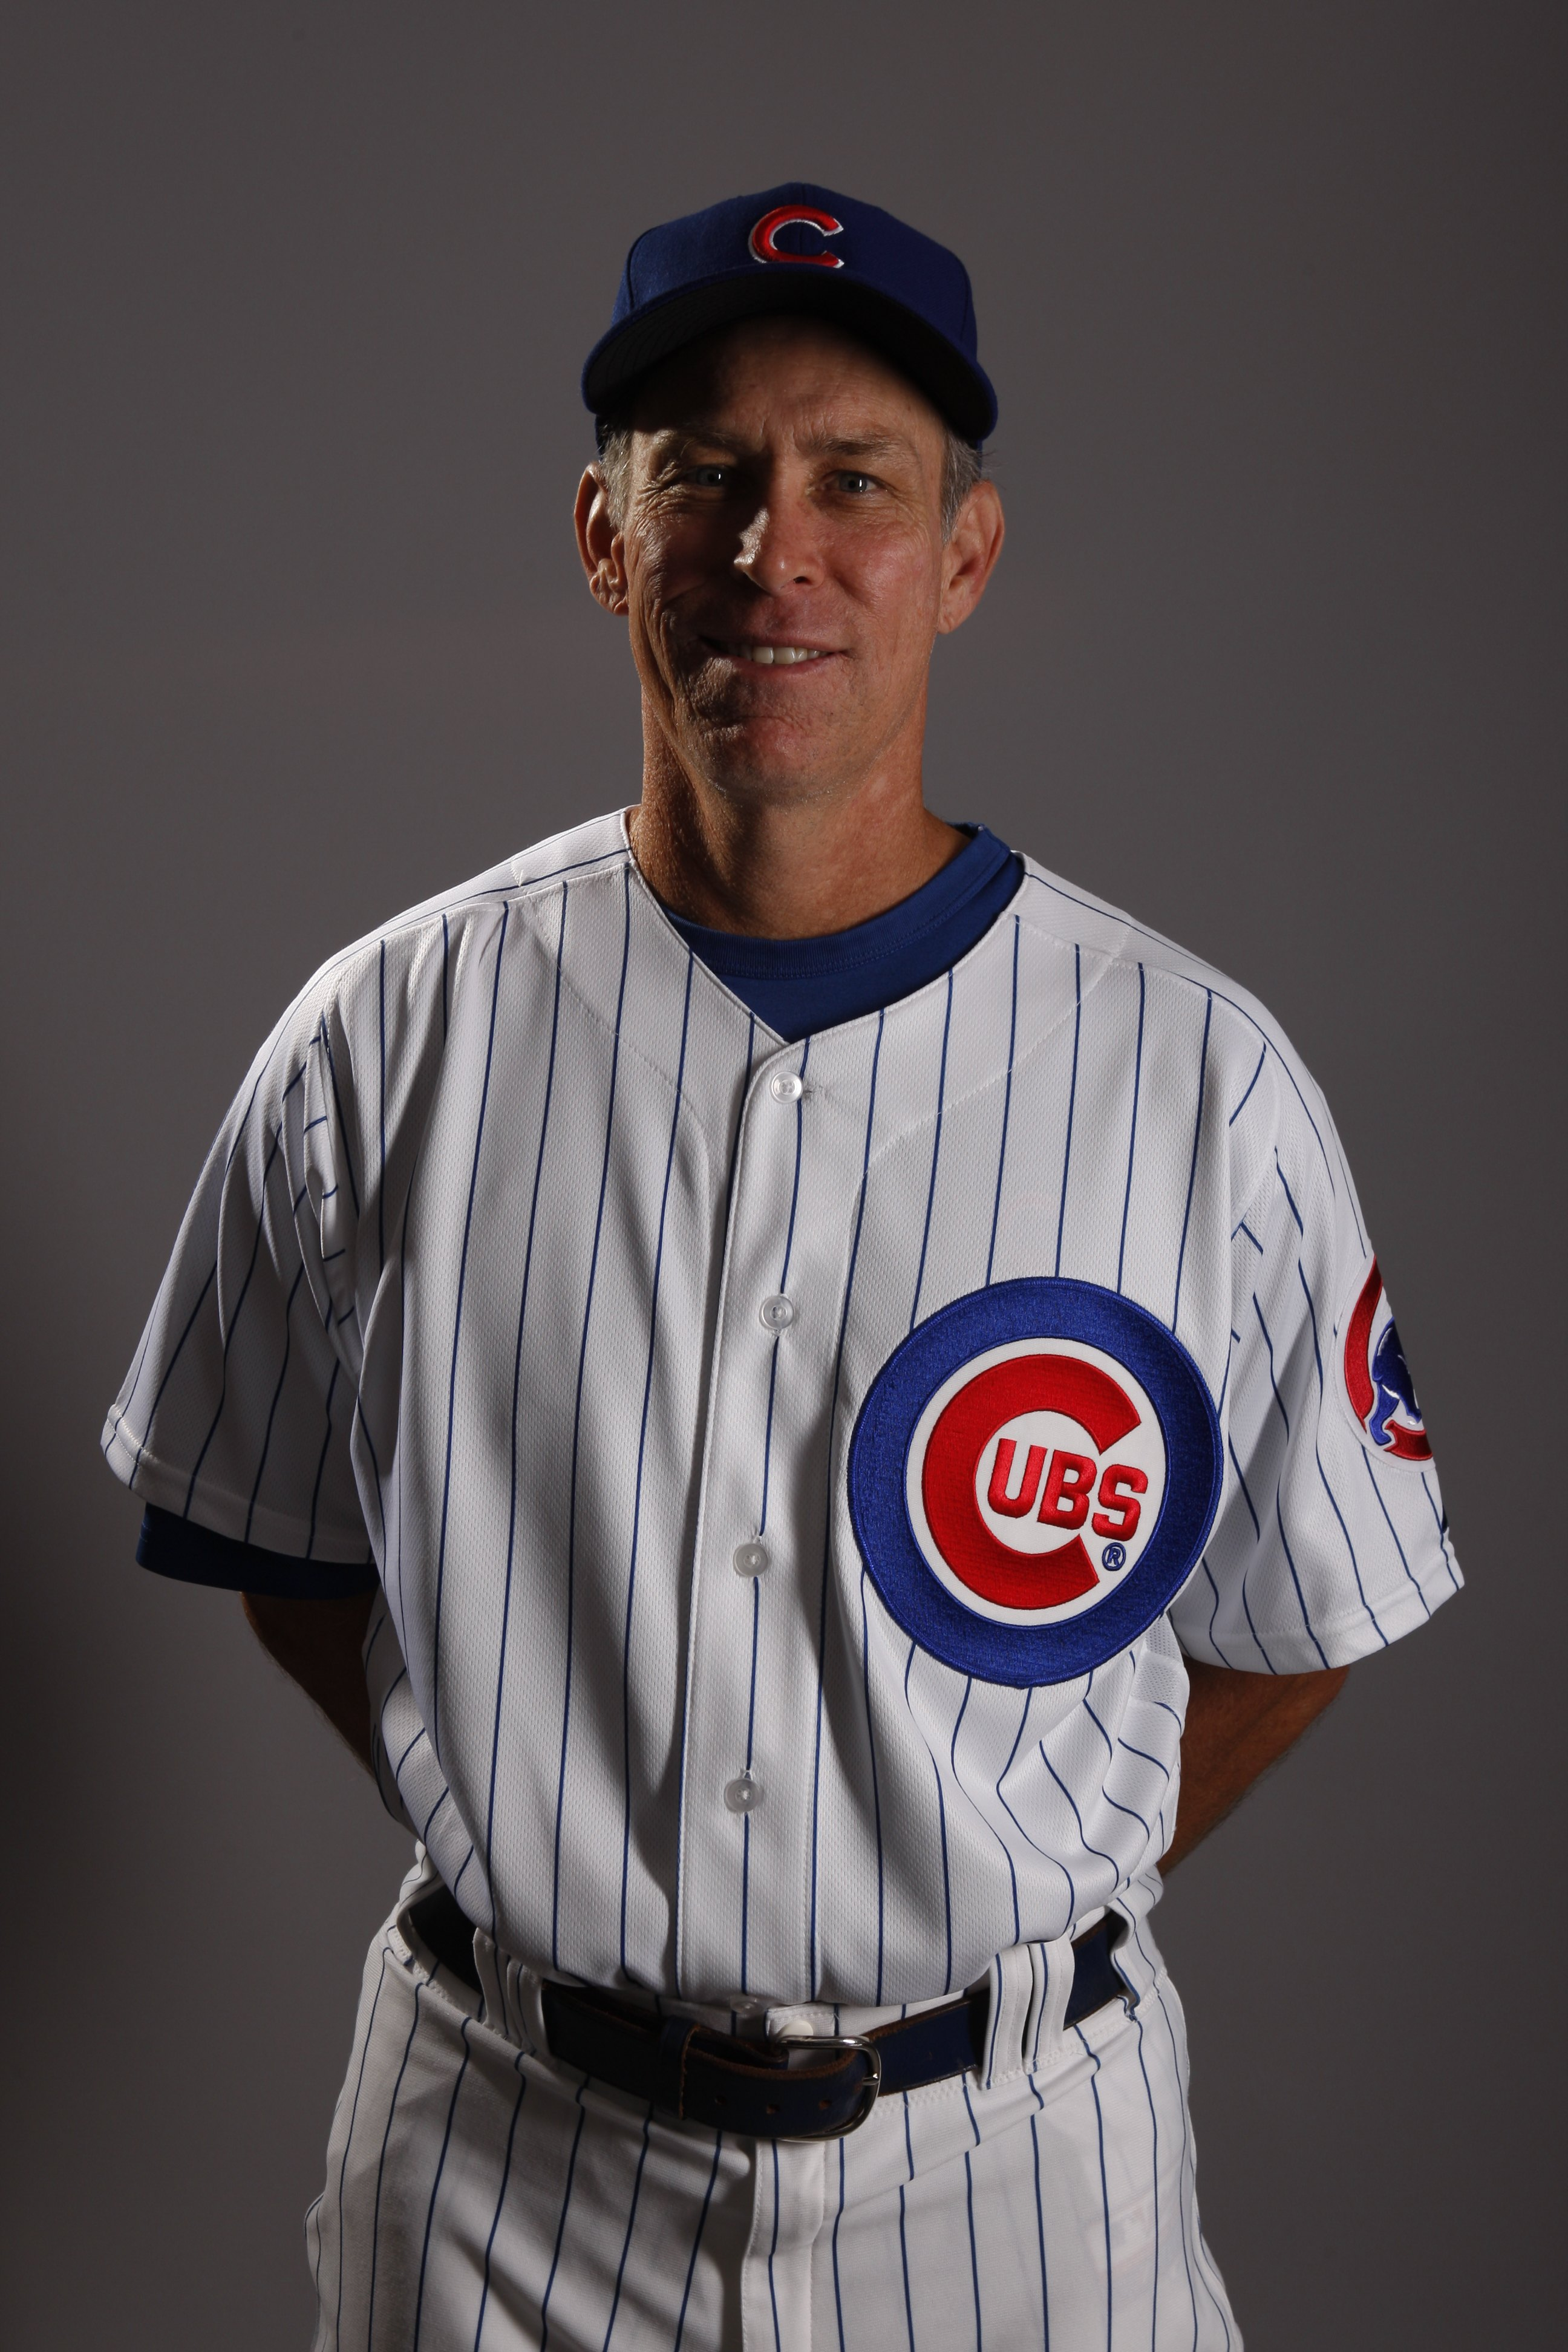 MESA, AZ - FEBRUARY 25:  Bench coach Alan Trammell of the Chicago Cubs poses for a photo during Spring Training Photo Day on February 25, 2008 in Mesa, Arizona.  (Photo by Chris Graythen/Getty Images)